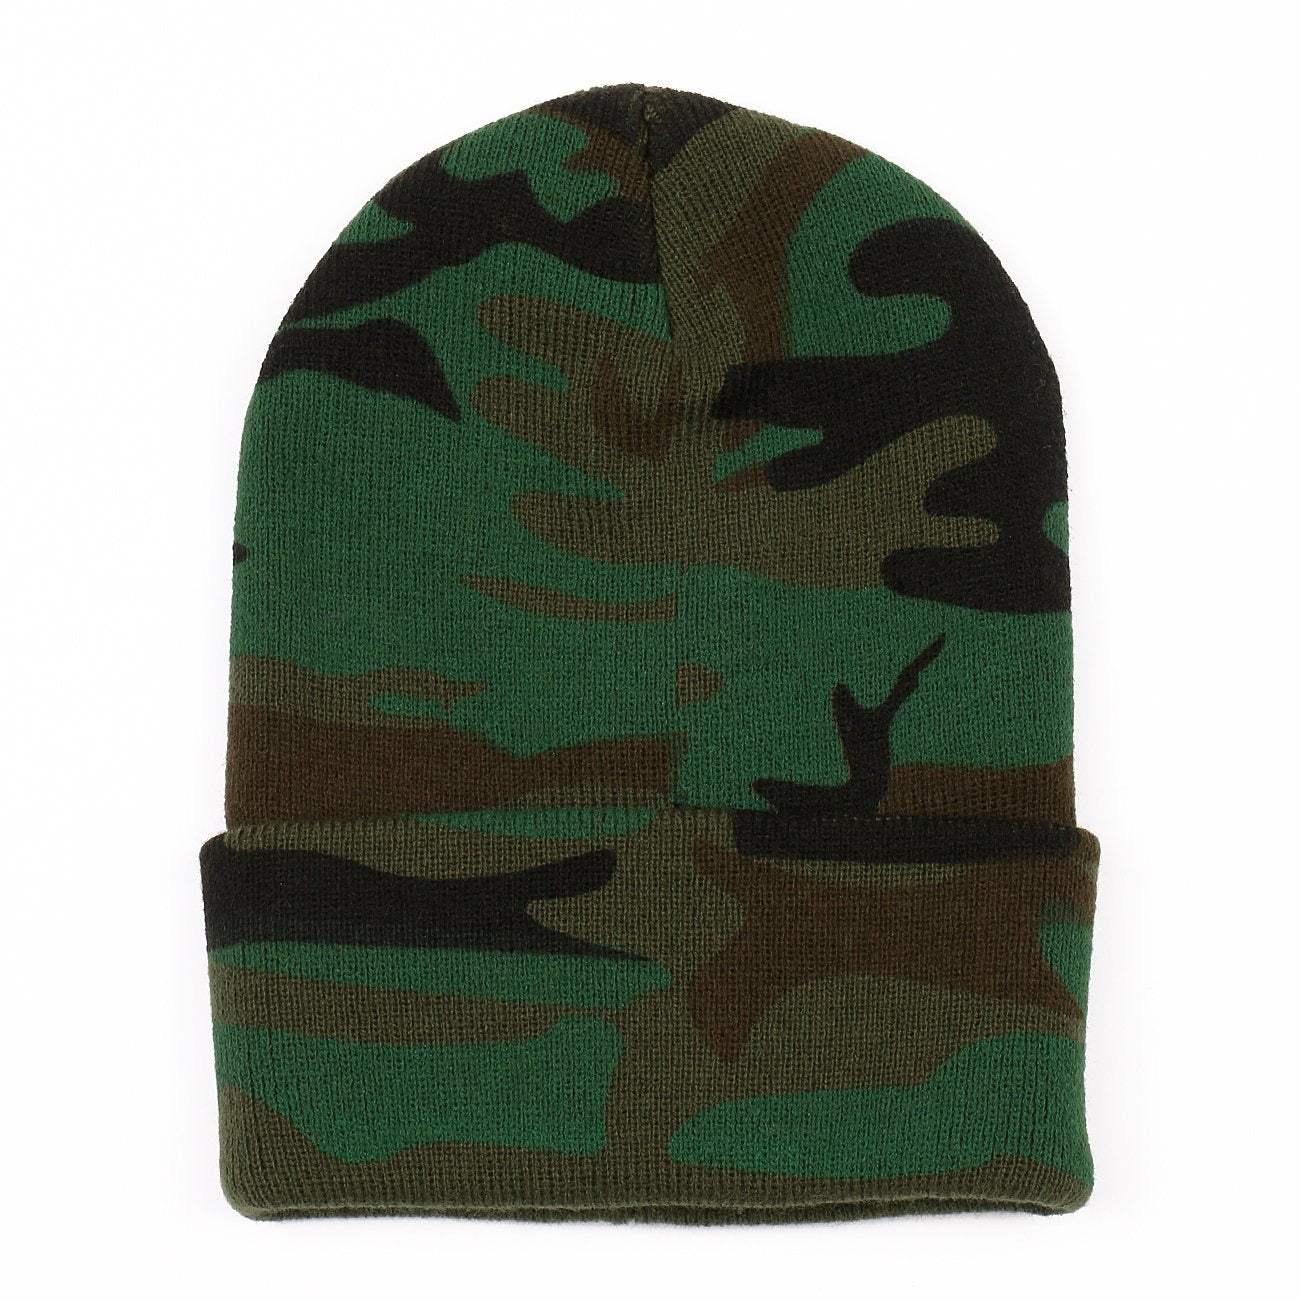 Long Cuffed Knit Green Camouflage Beanie